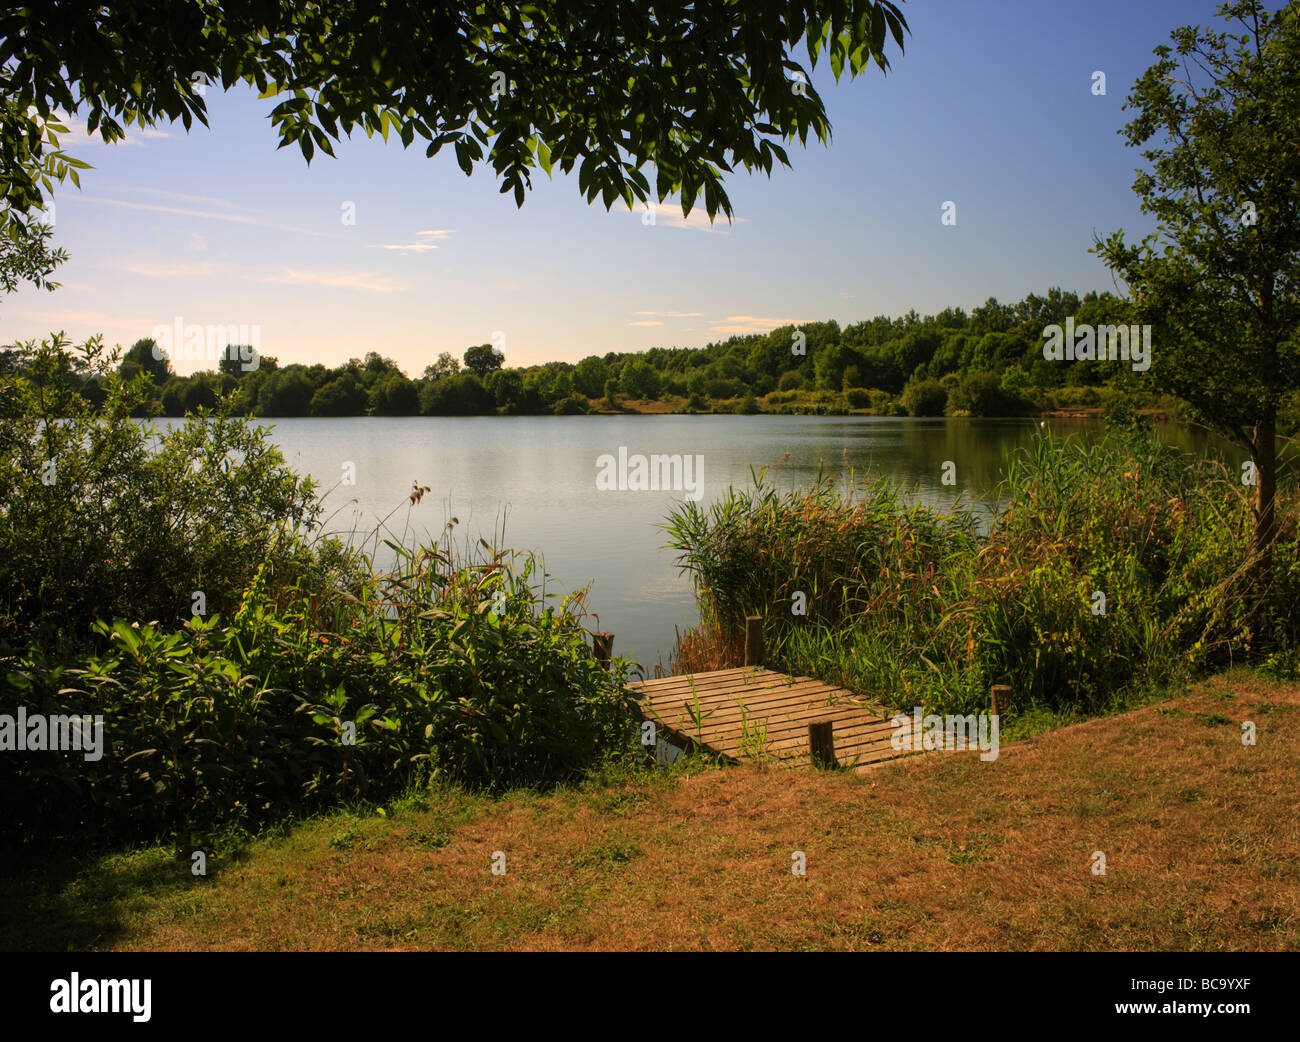 Lake. Haysden country park, Tonbridge, Kent, England, UK. - Stock Image